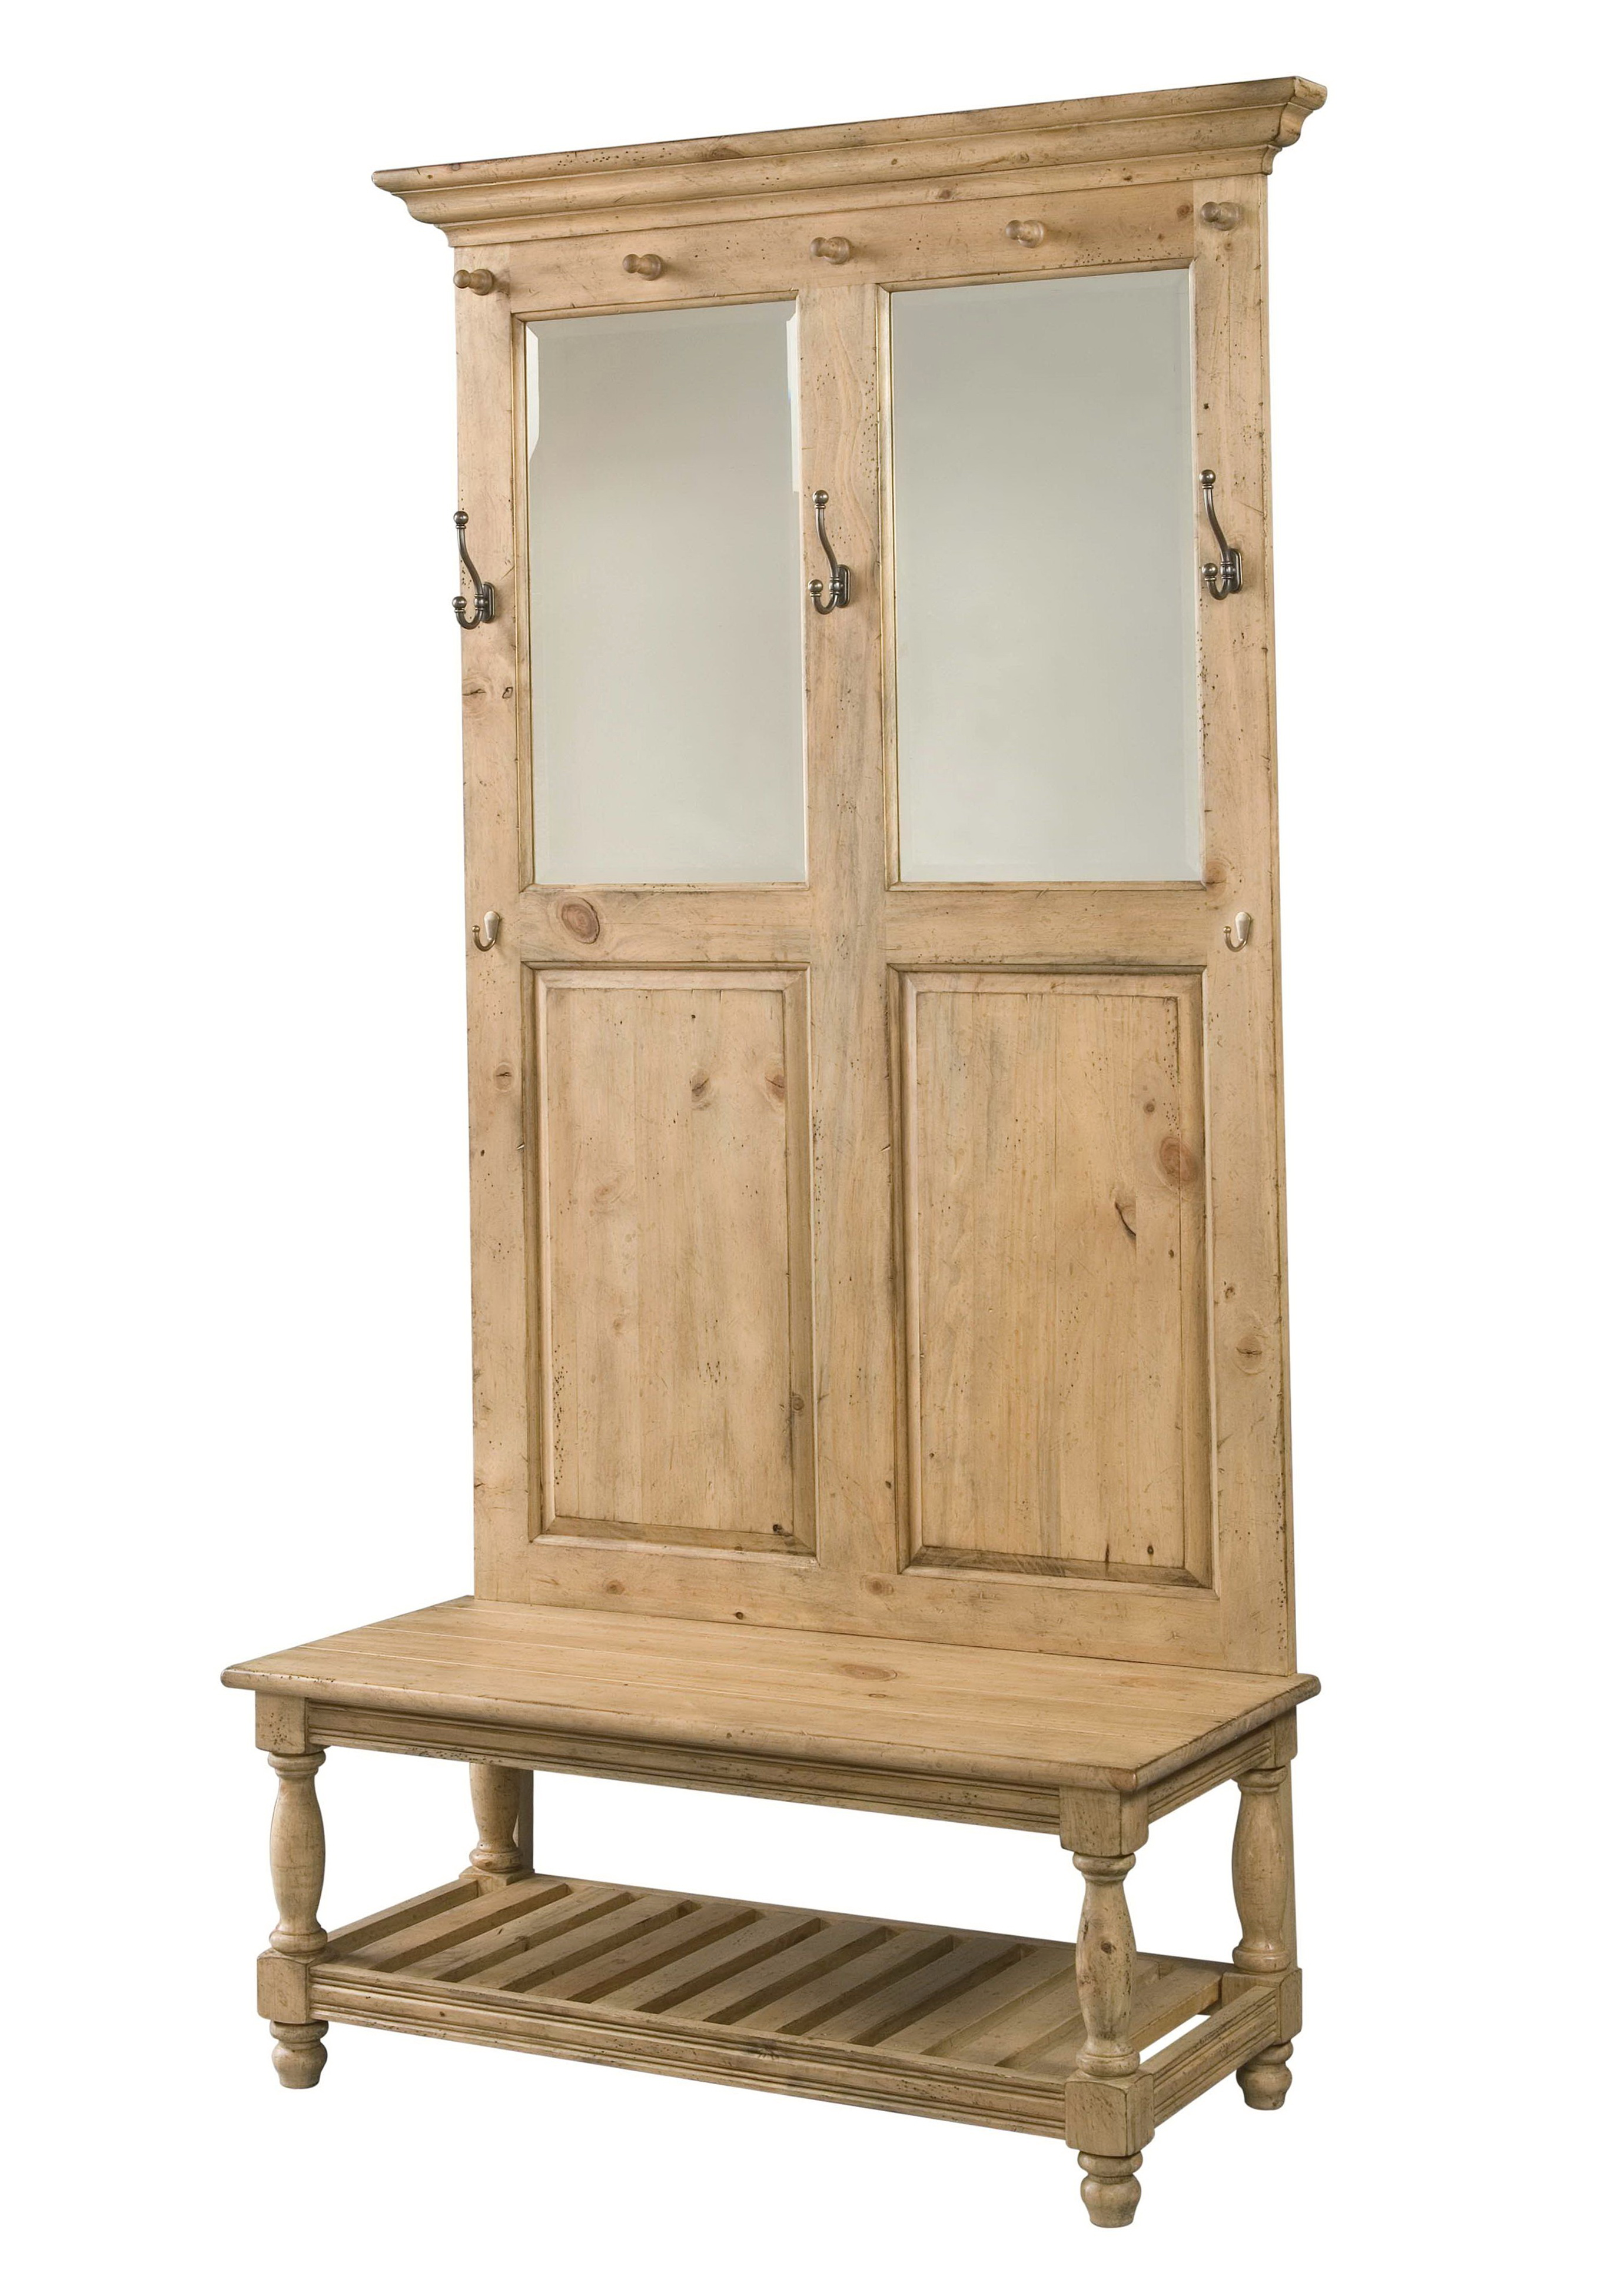 Antique Hall Tree With Bench And Mirror